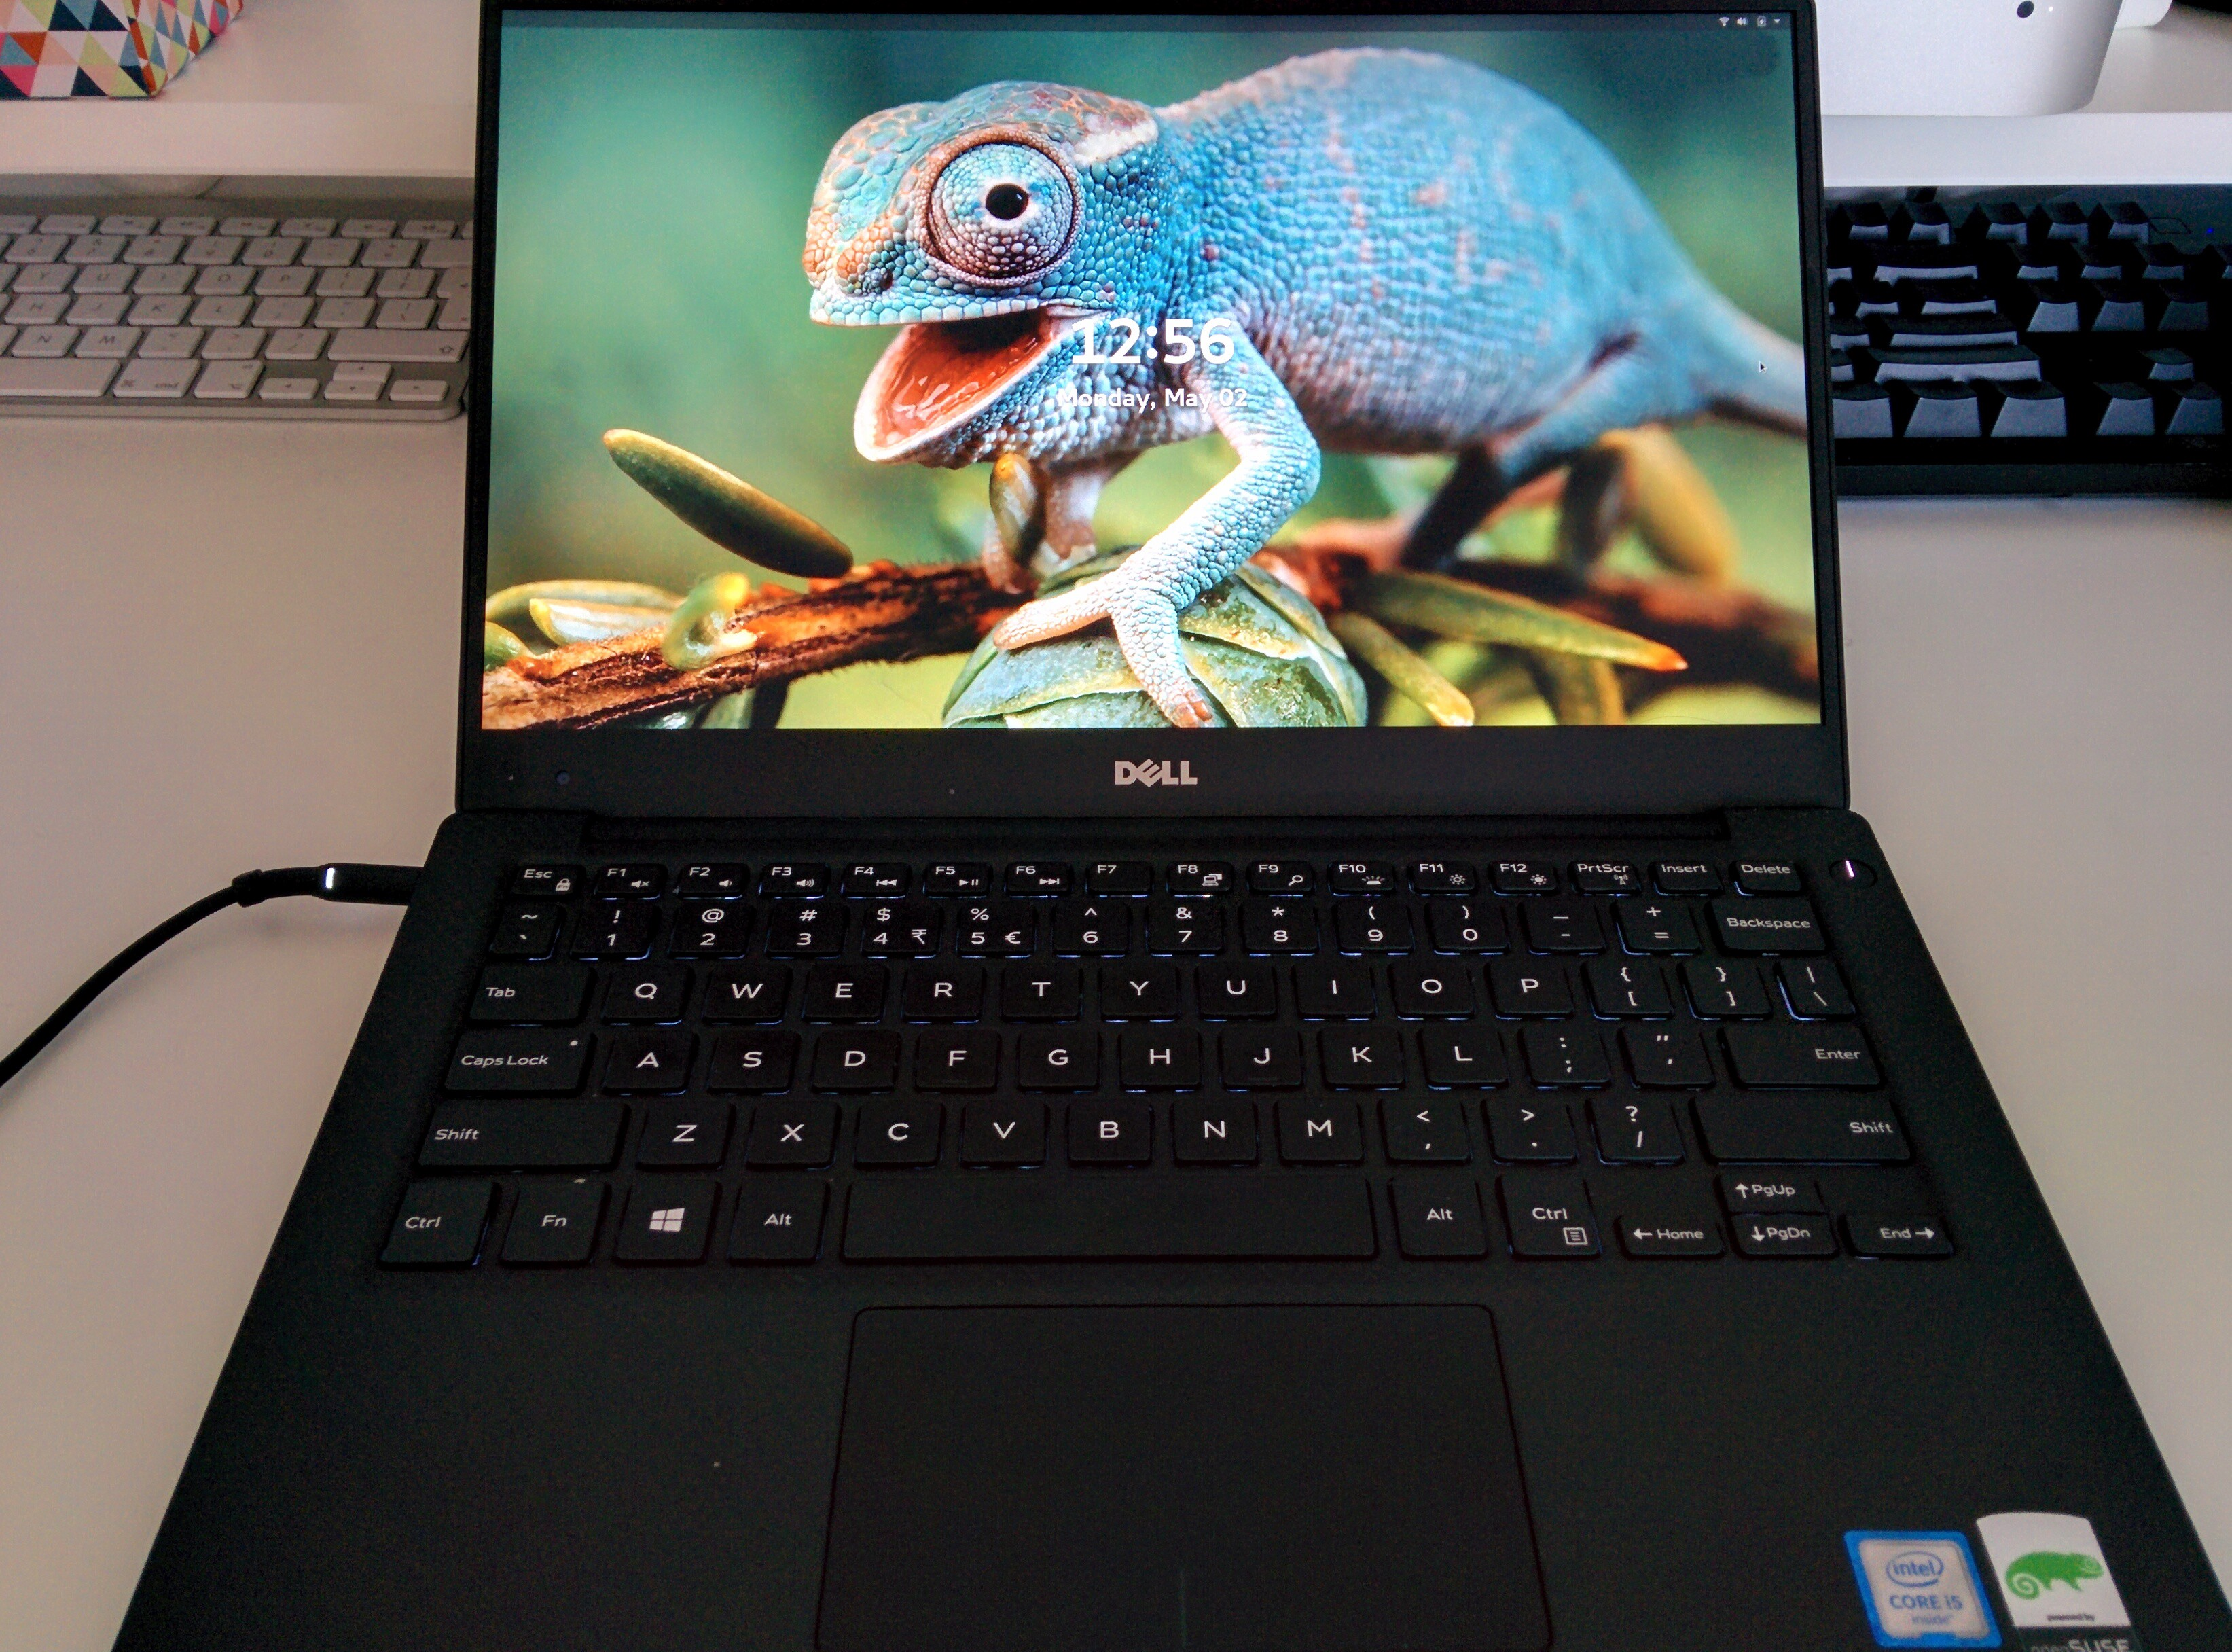 Installing Tumbleweed on the Dell XPS 13 - Mauro Morales - Medium